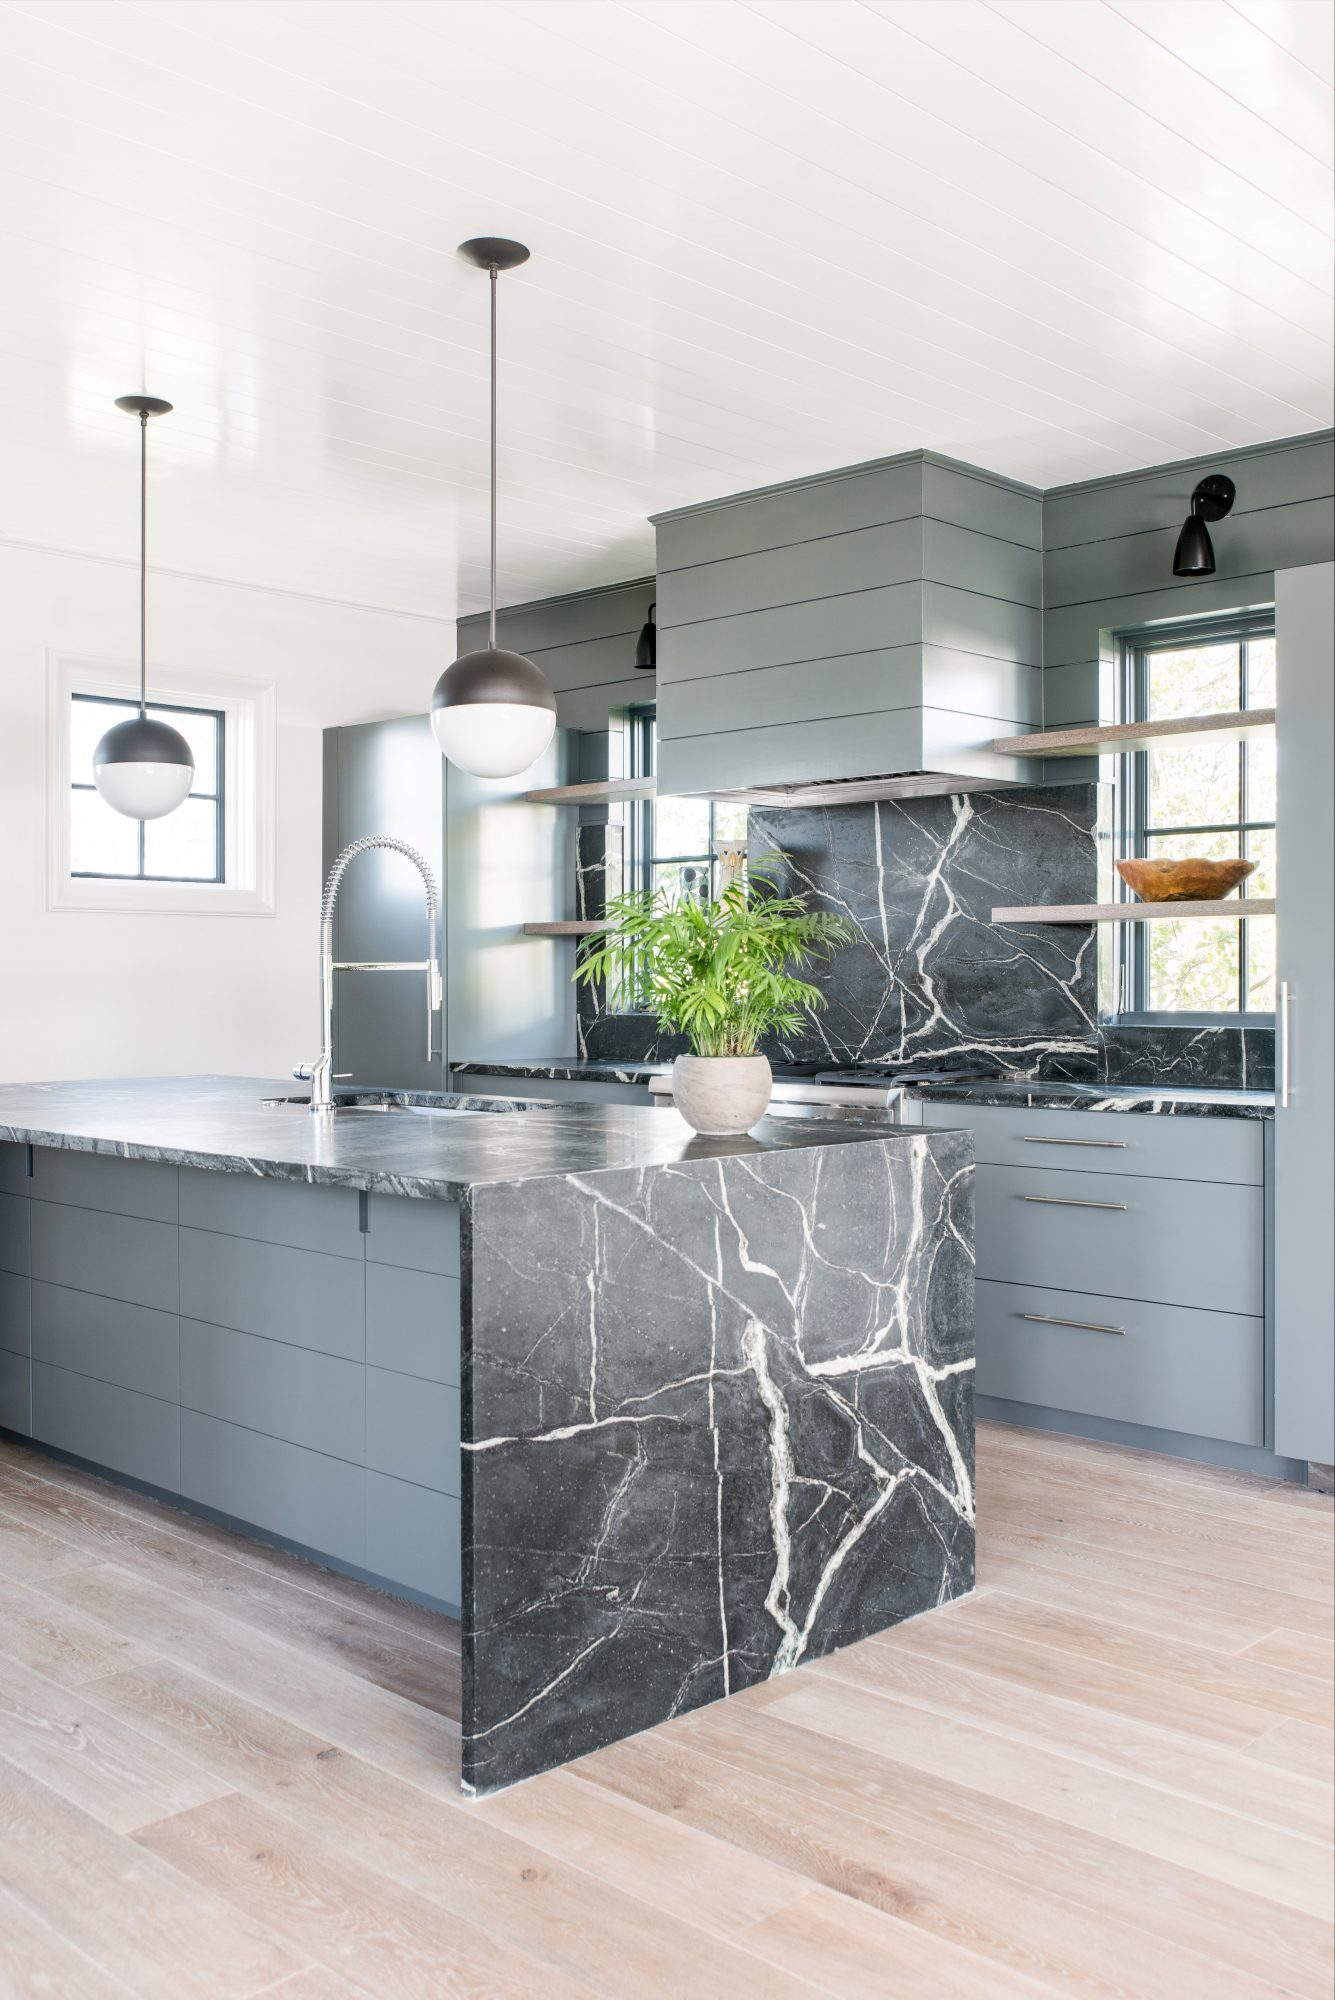 8 Kitchen Islands That Are Inspiring And Stylish_3